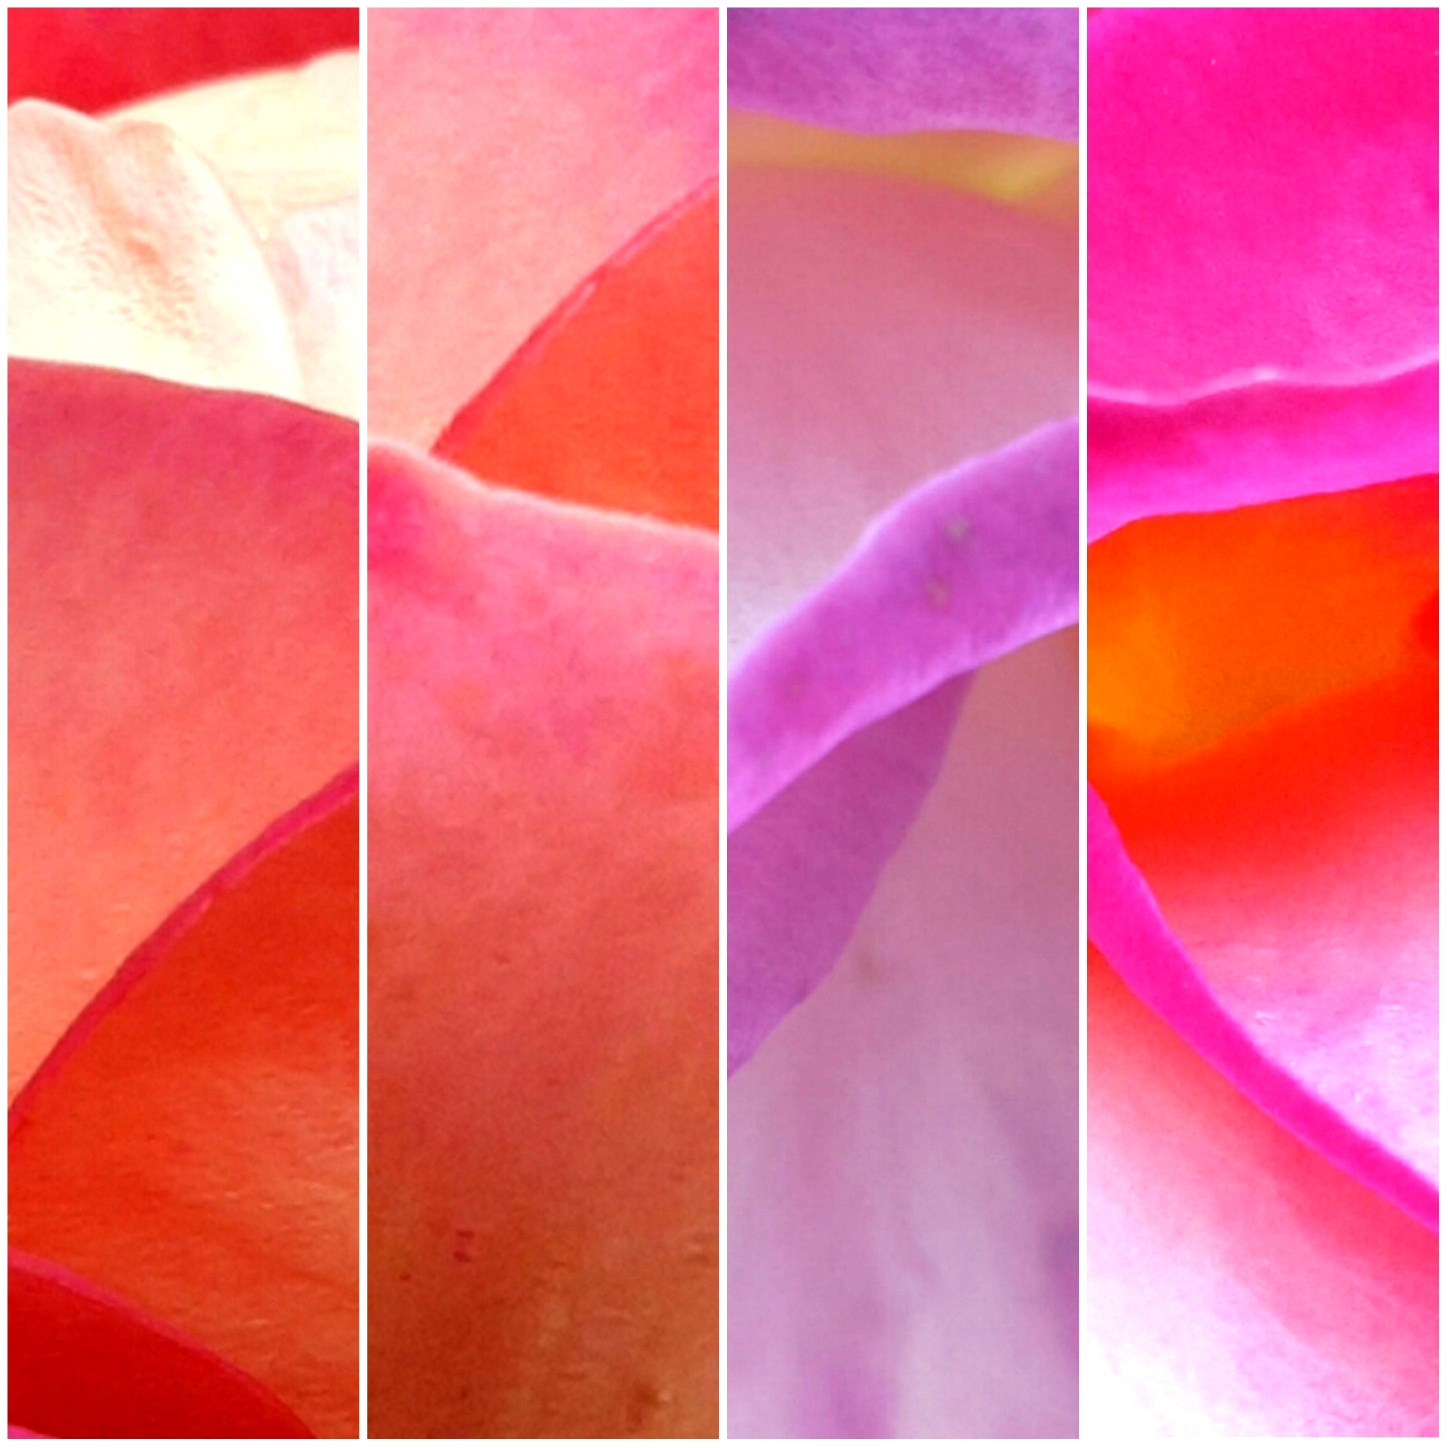 THE YEAR OF THE ROSES /  SUBMISSIONS UNTIL 30 SEPTEMBER 2021